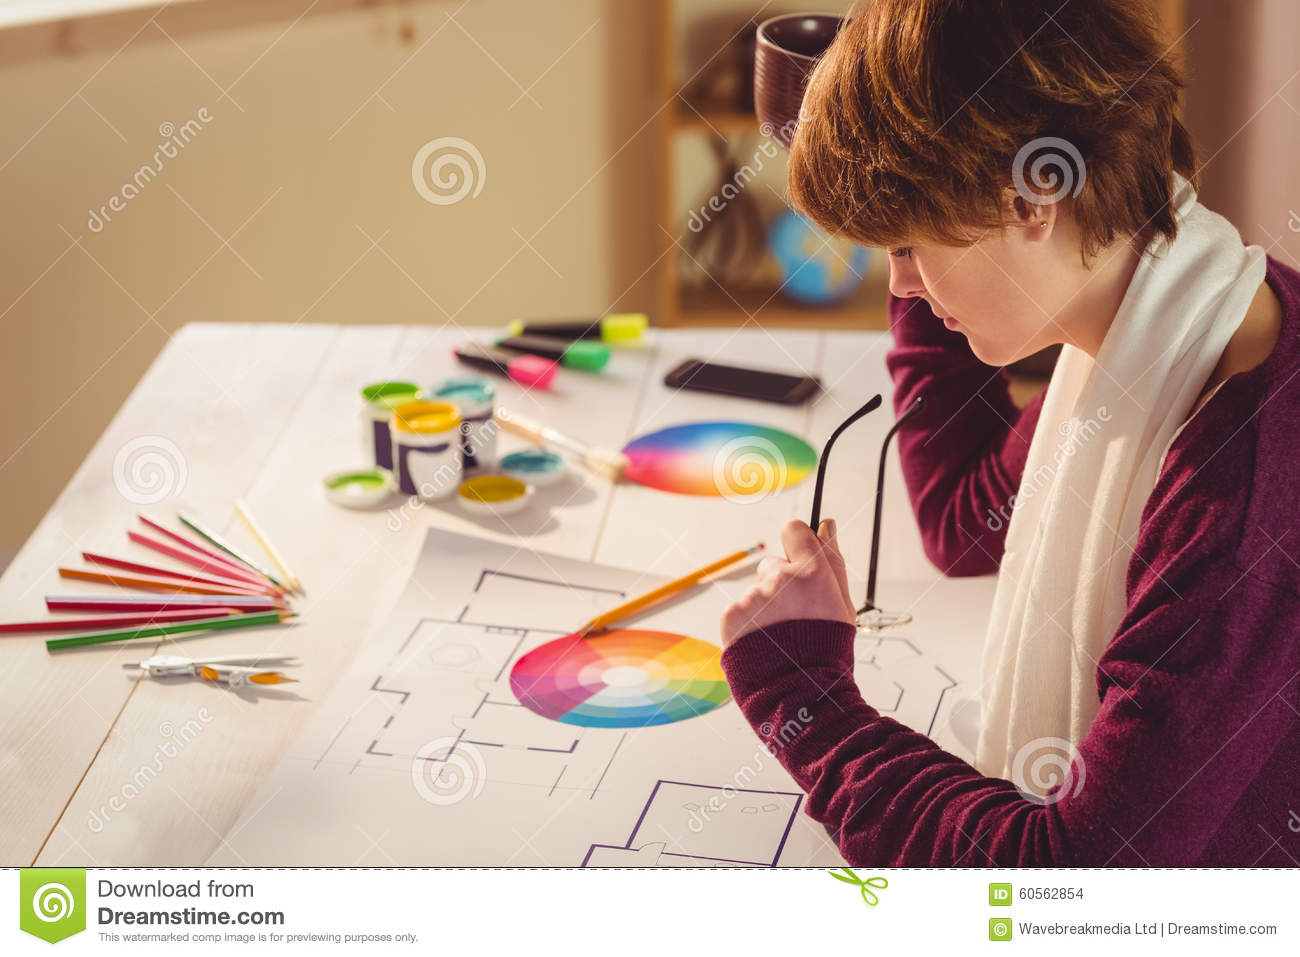 Graphic designer working at desk